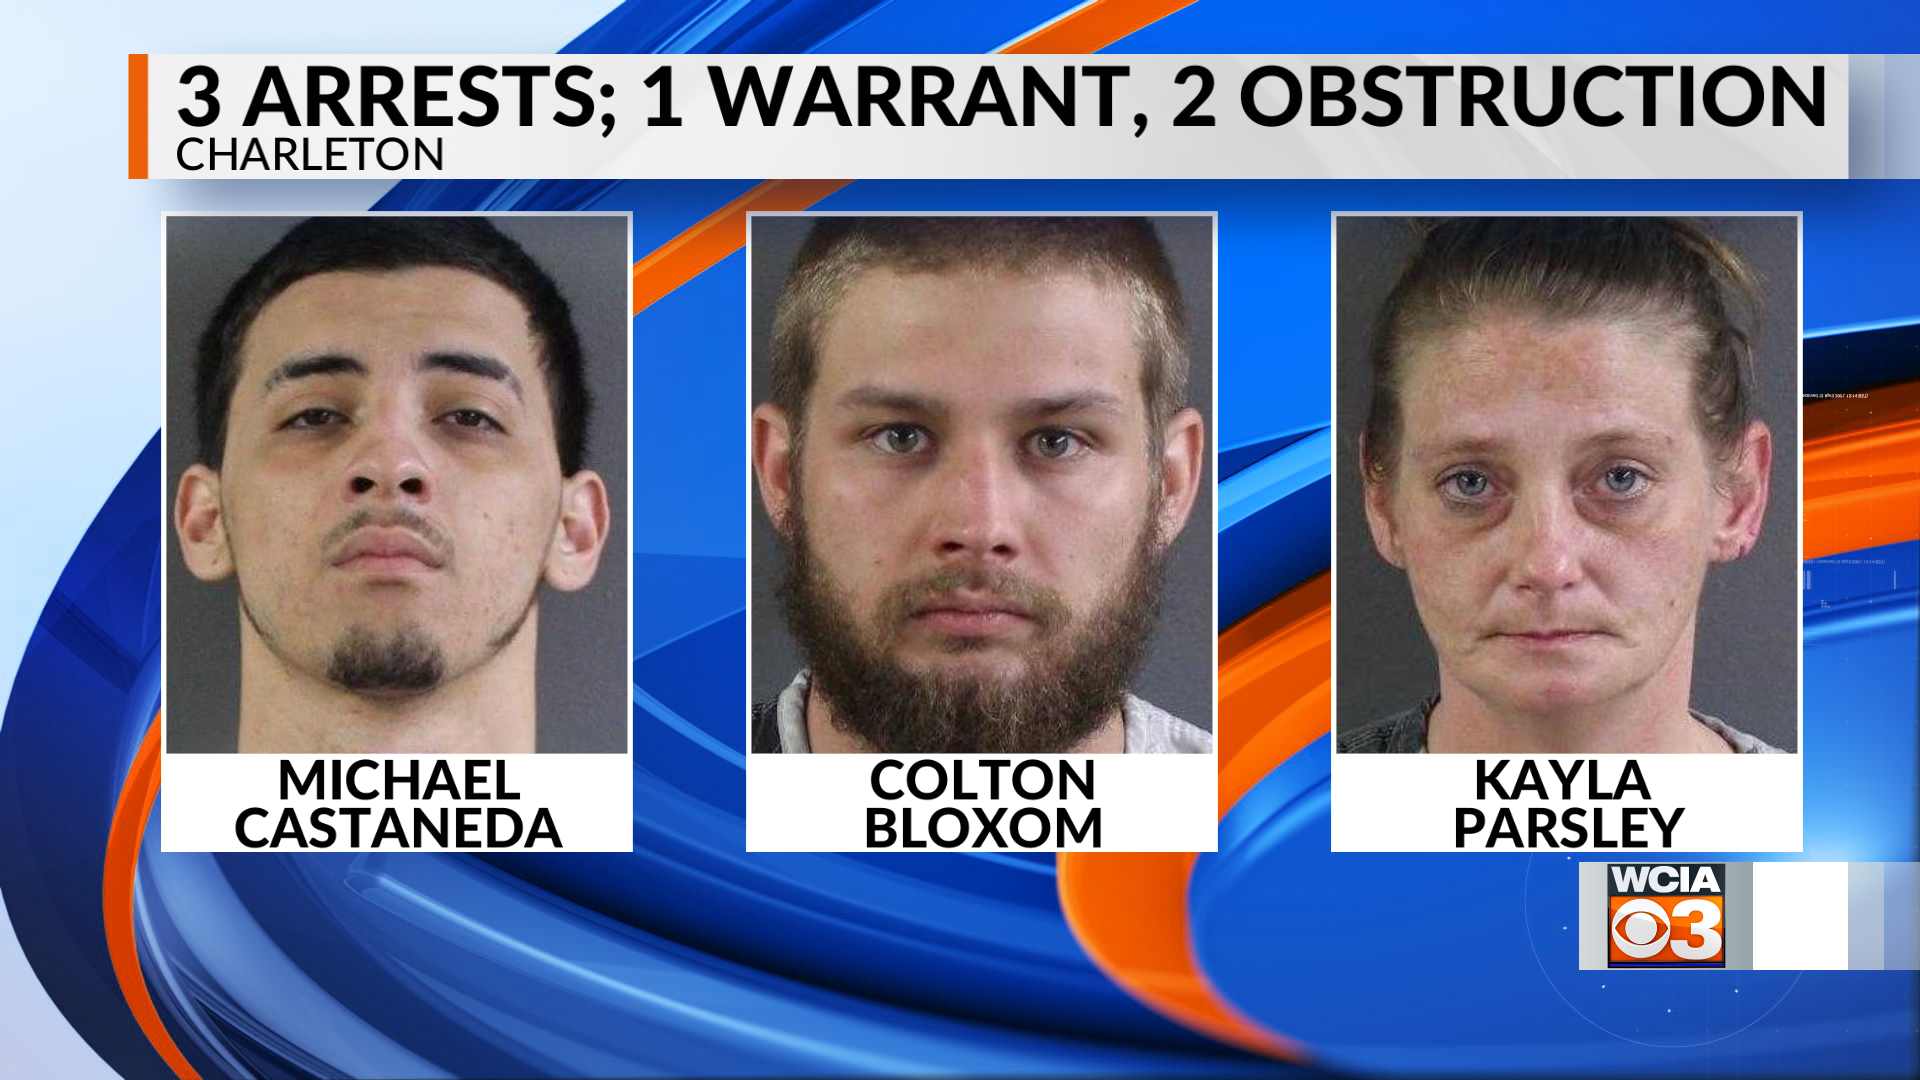 charleston triple arrest_1559935481254.png.jpg